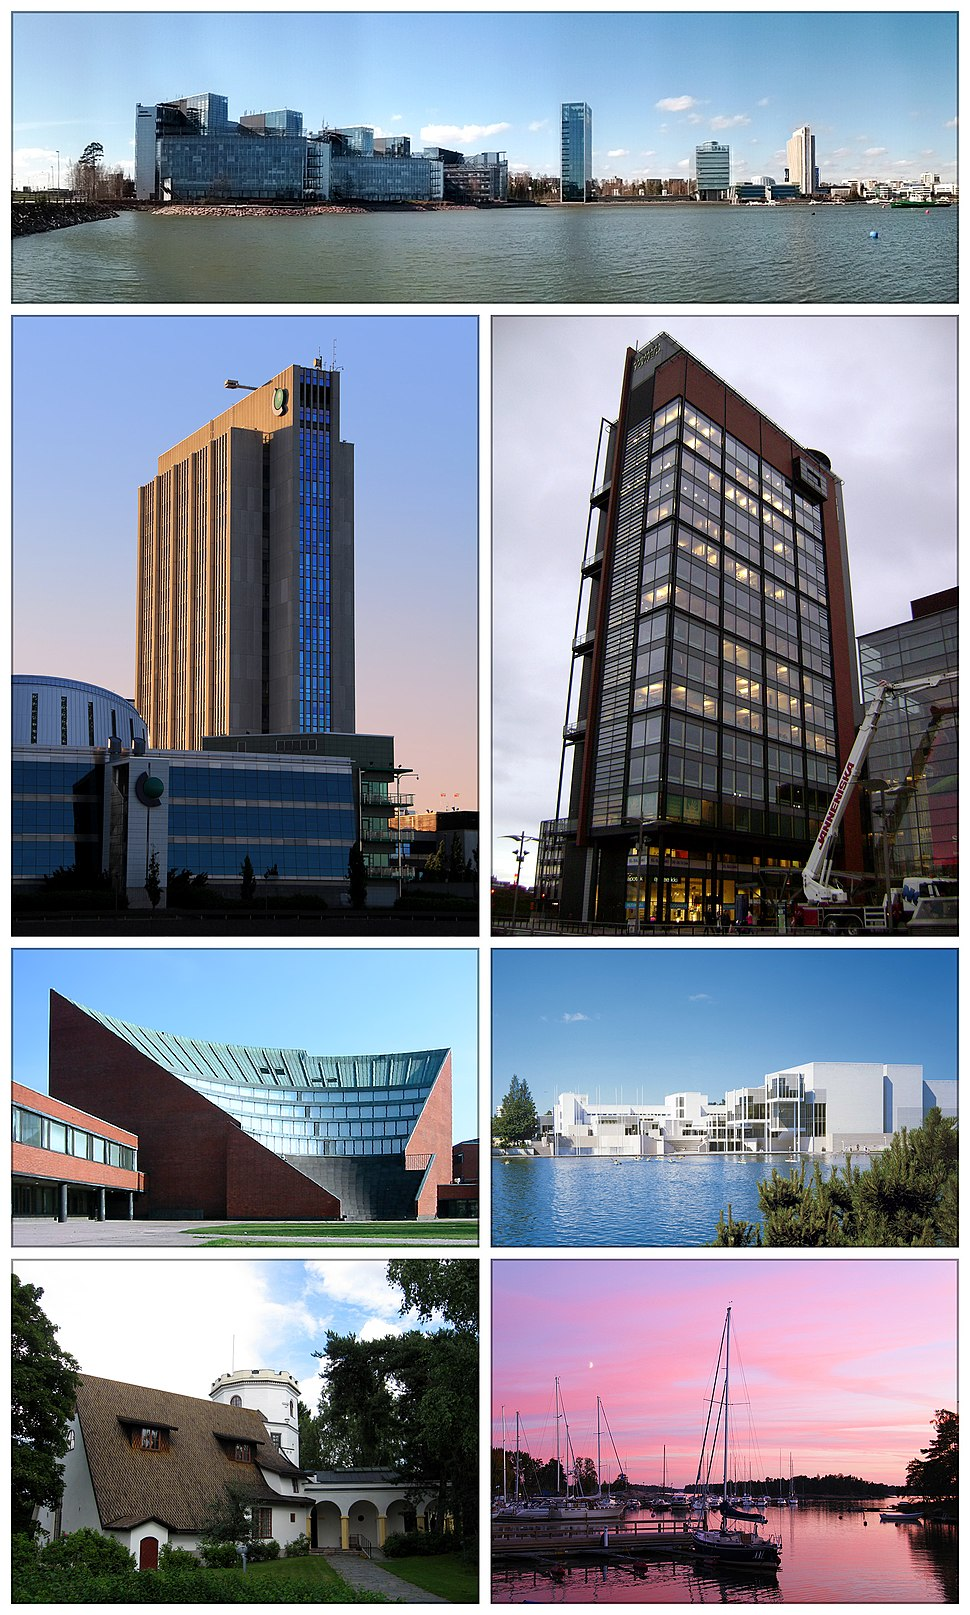 Clockwise from top: skyline of offices in Keilaniemi, Panorama Tower in Leppävaara, the Espoo Cultural Centre, Haukilahti docks, the Gallen-Kallela Museum, Aalto University Otaniemi campus auditorium, and the Fortum head office.